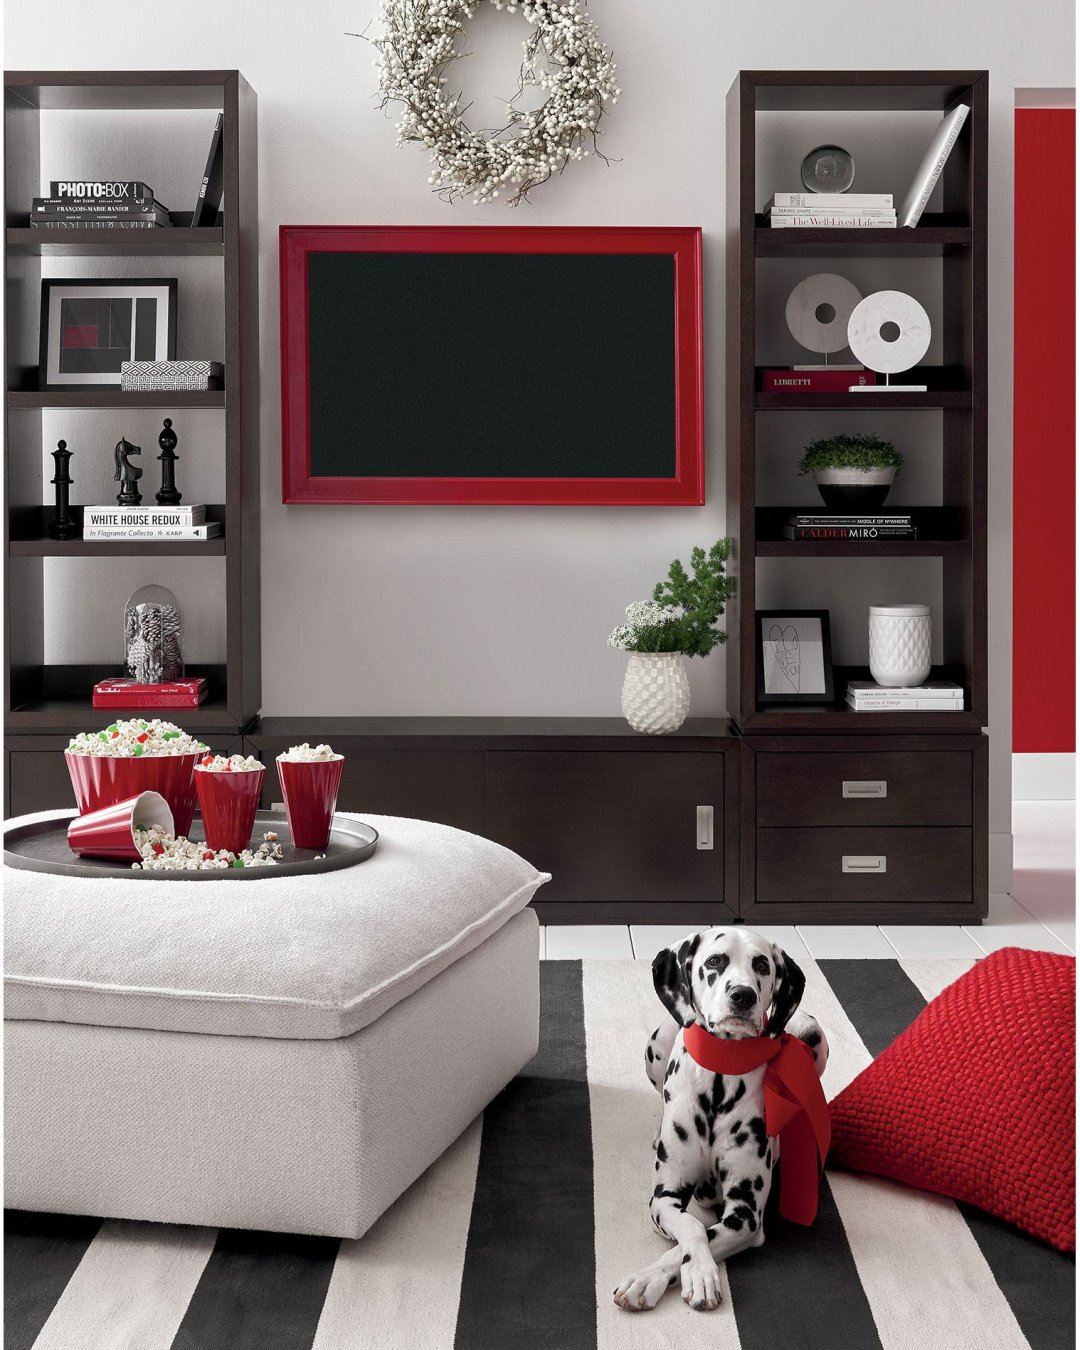 Curated image with white ilex berry wreath aspect coffee modular open bookcase white marble